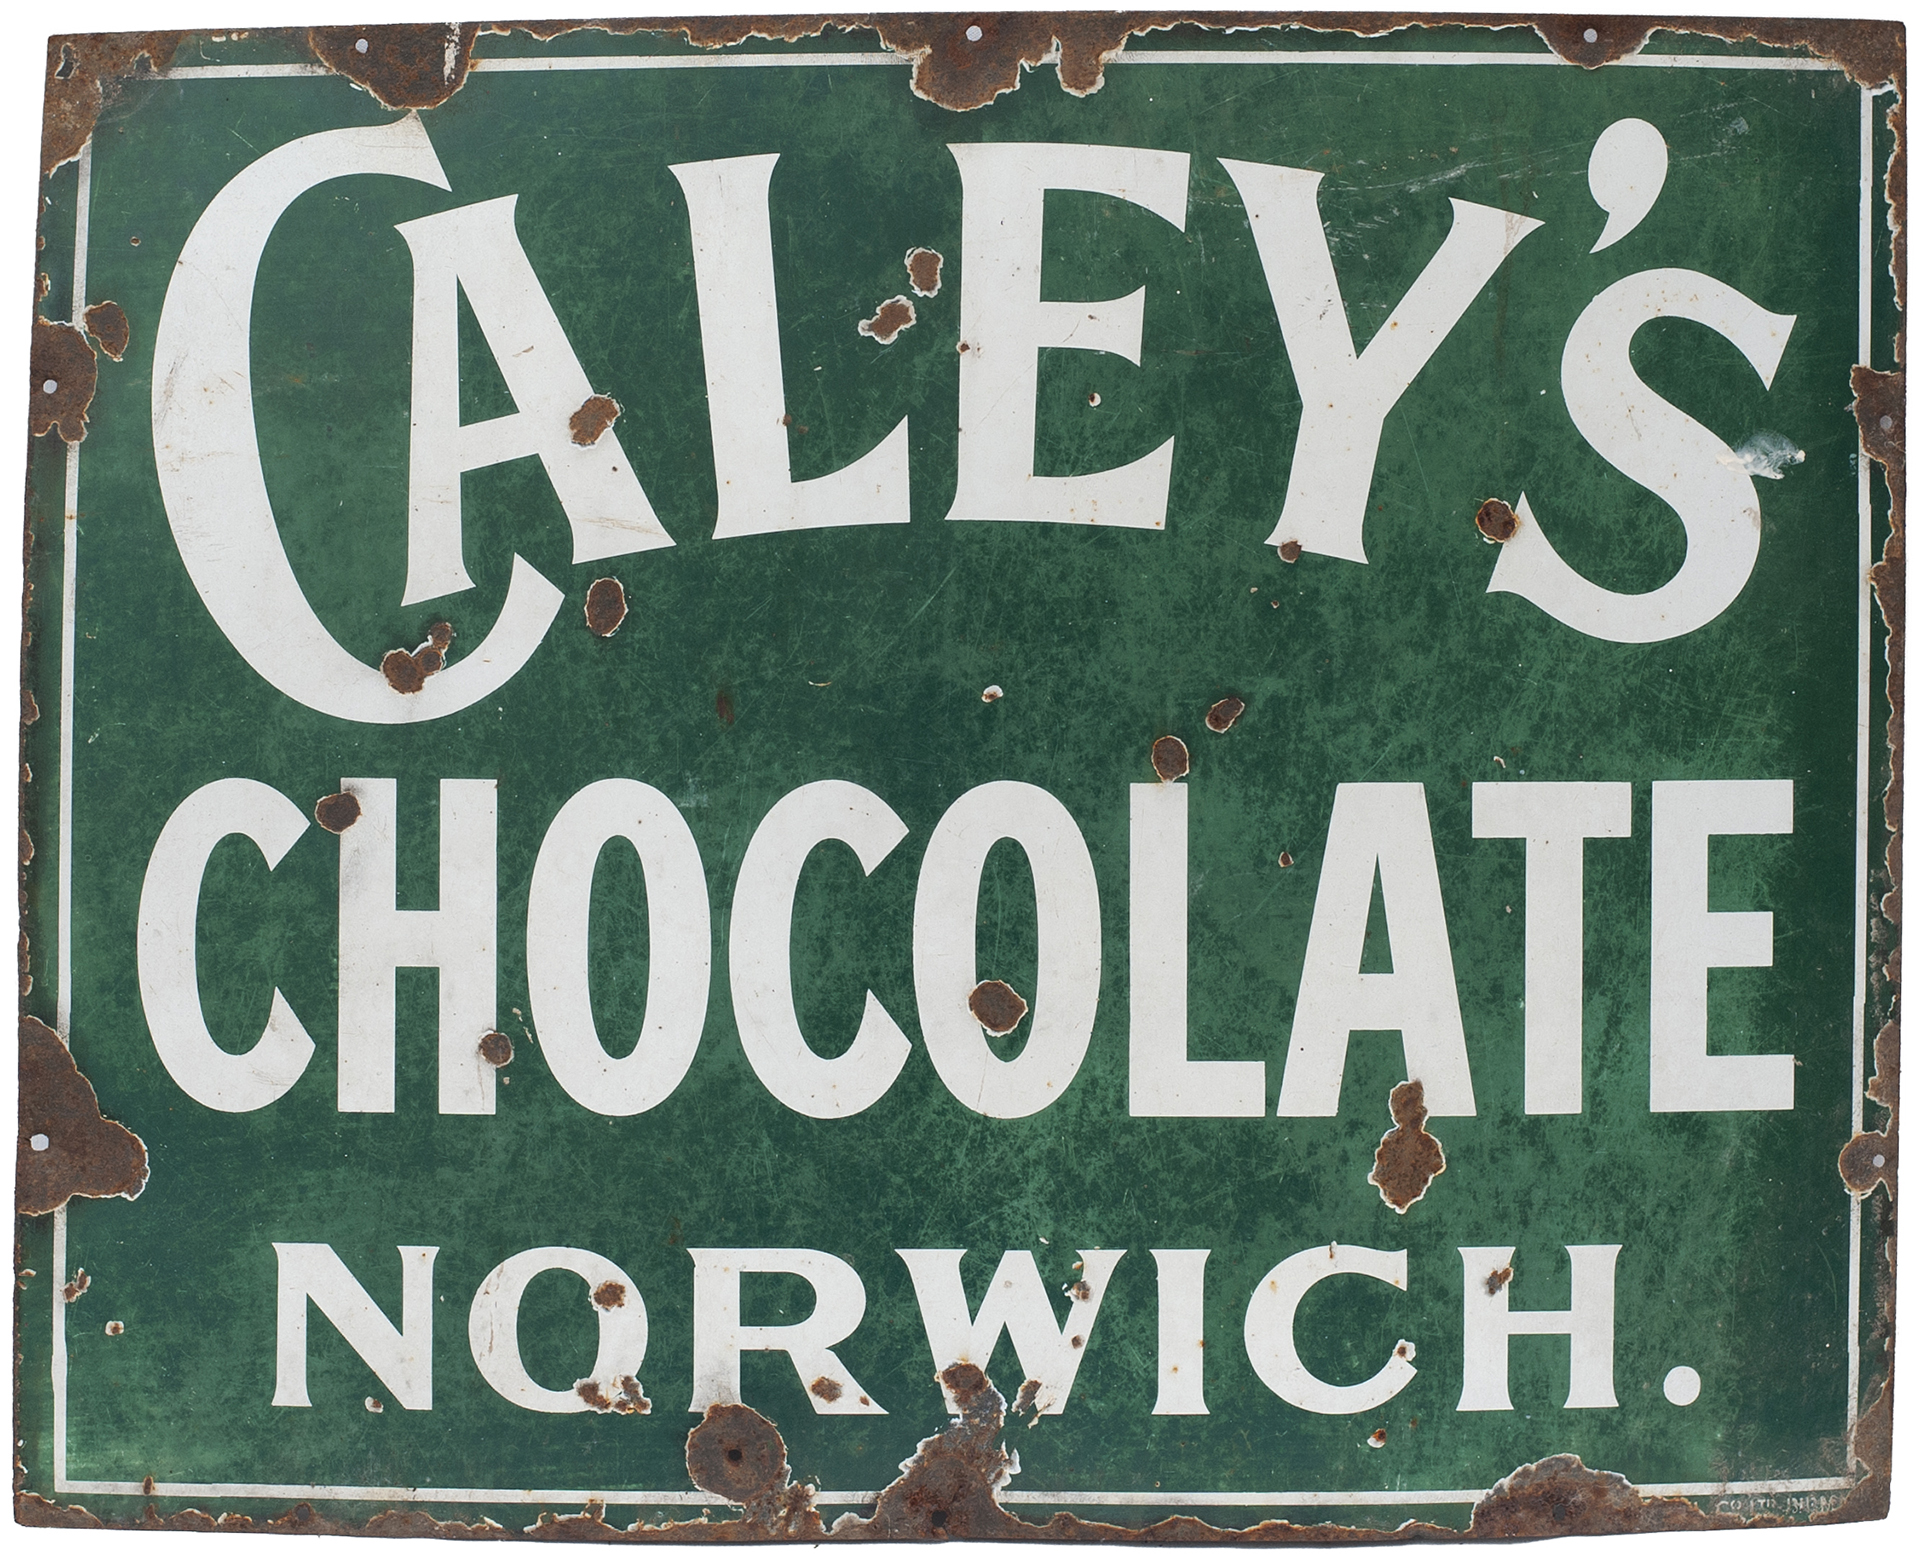 Advertising Enamel Sign CALEY'S CHOCOLATE NORWICH.